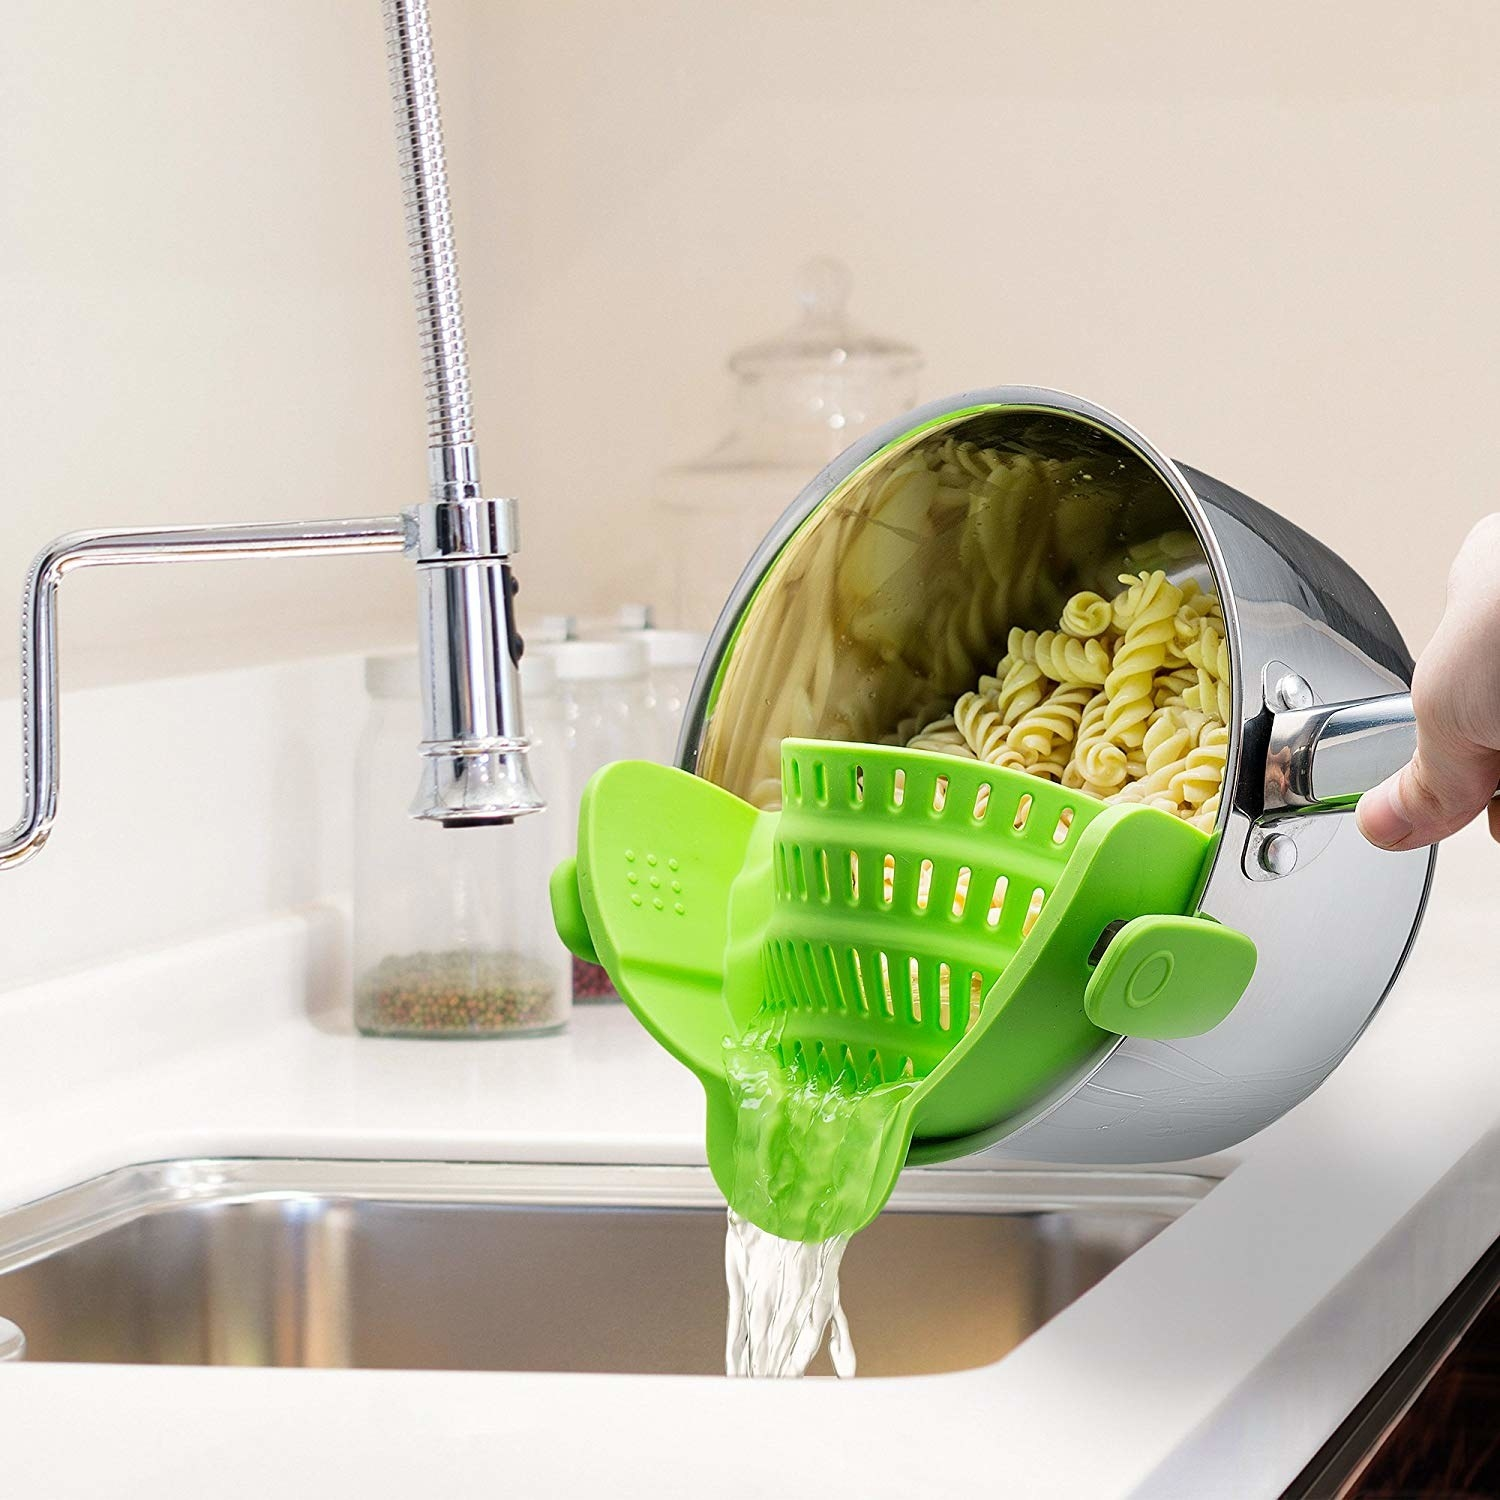 The strainer attached to a pot, covering half the pot, and draining the water from pasta